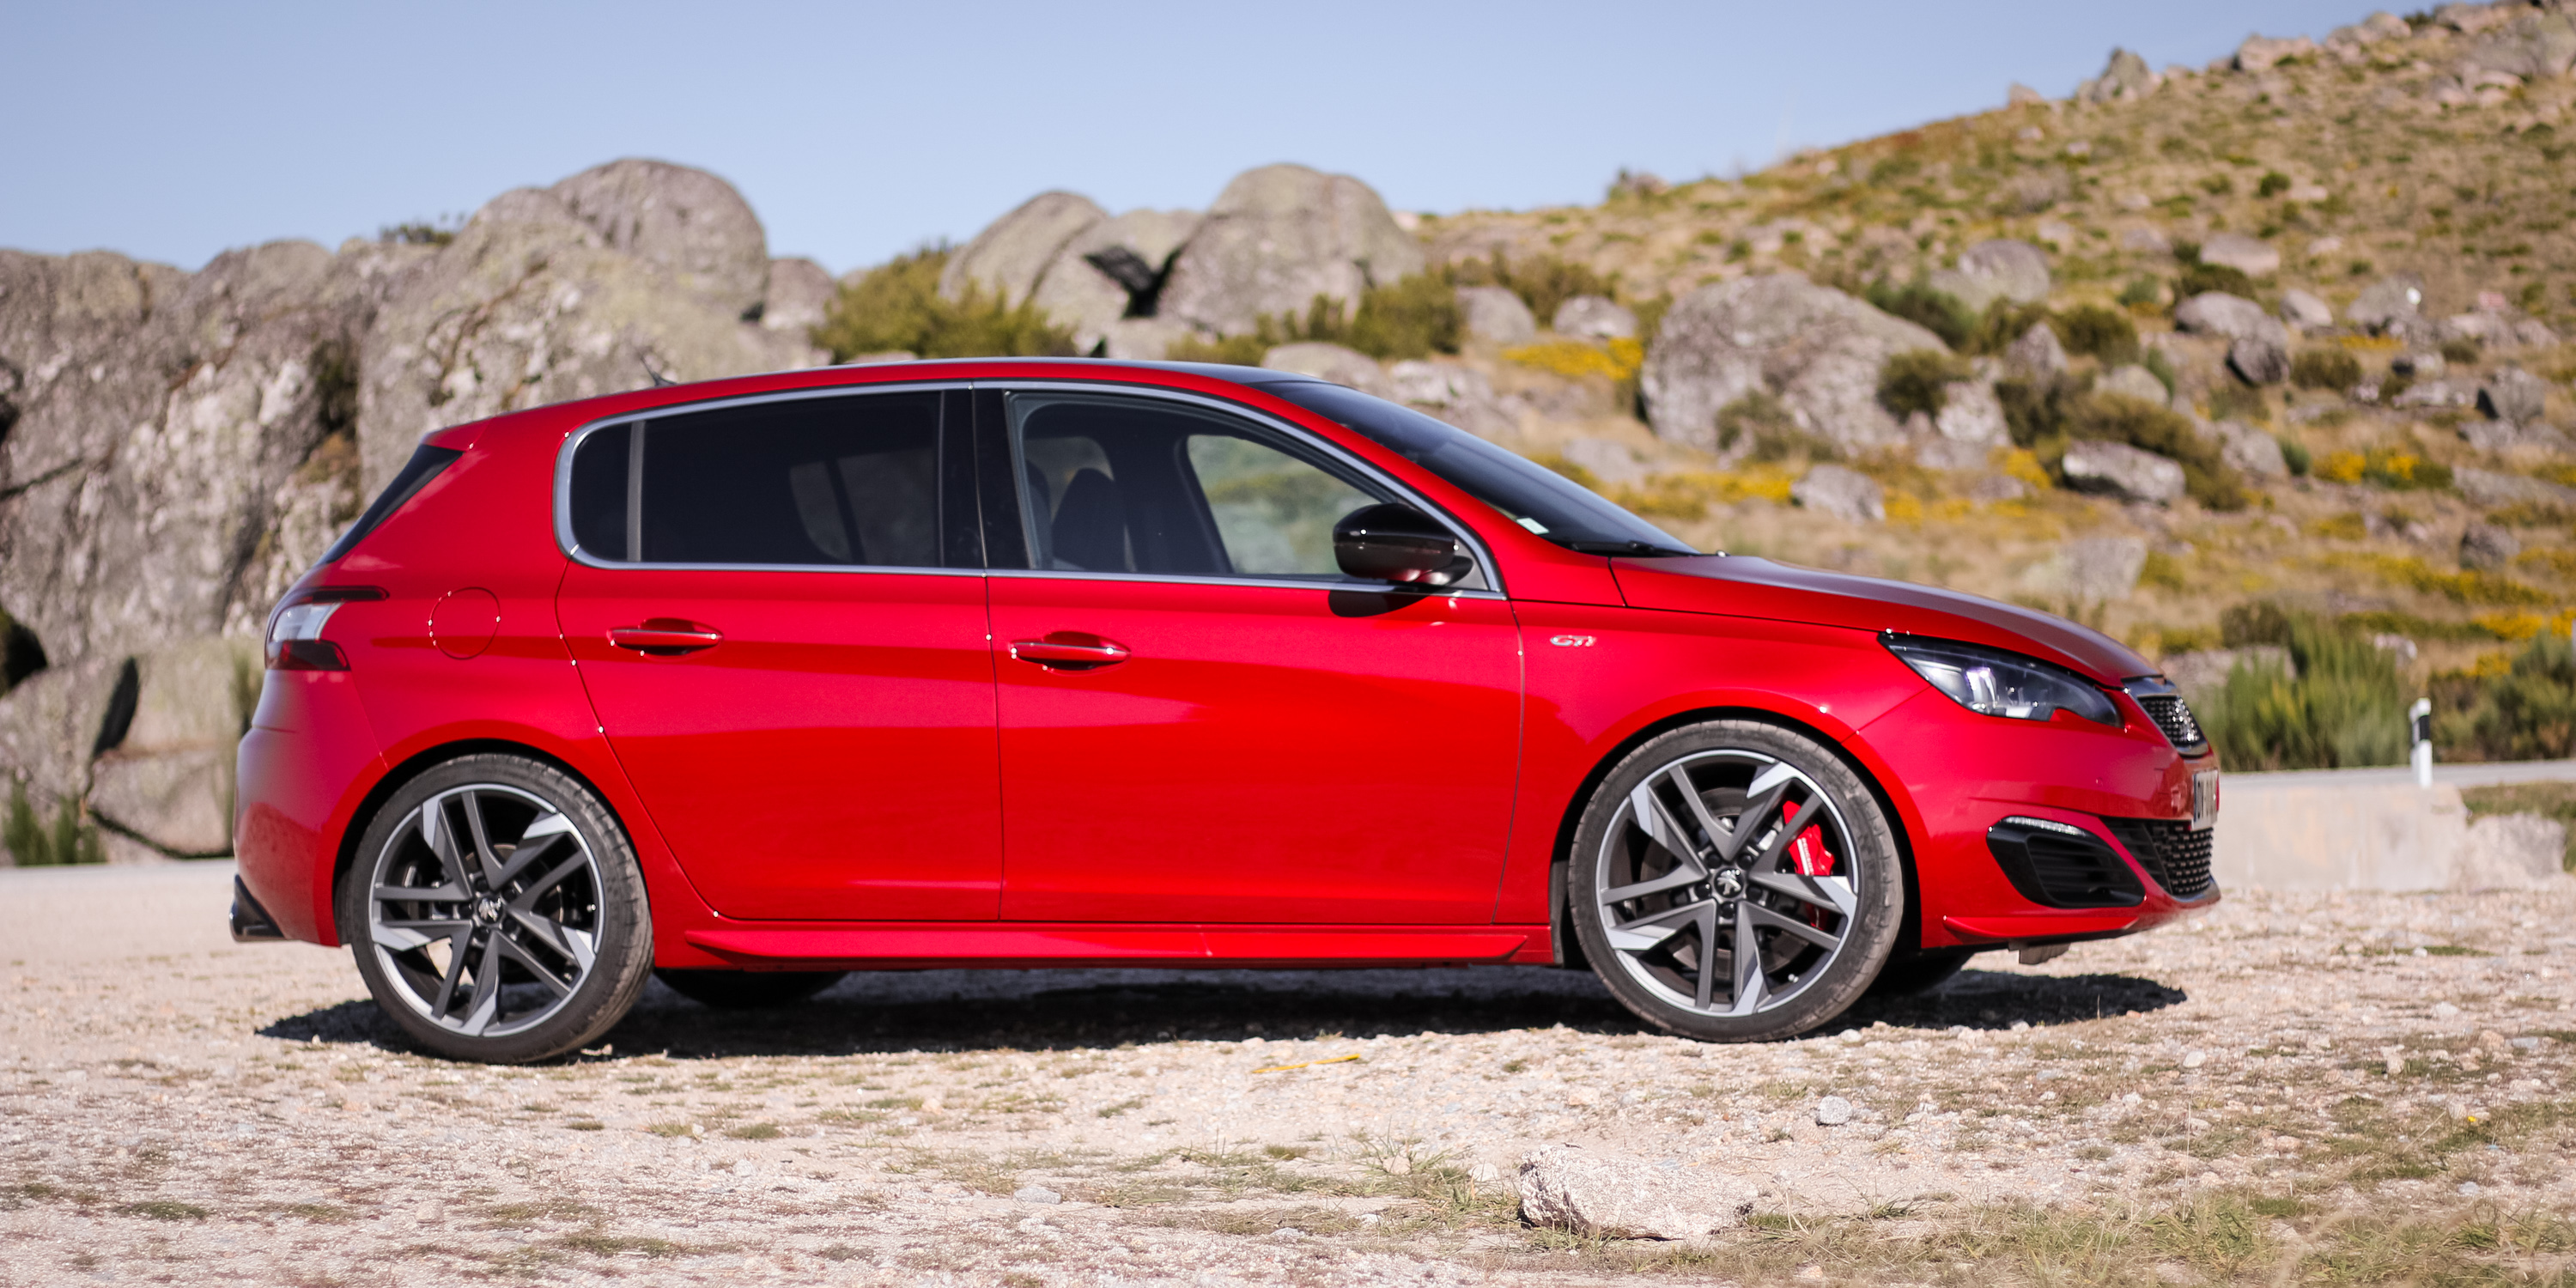 2016 Peugeot 308 Gti Side Exterior Preview (View 1 of 15)